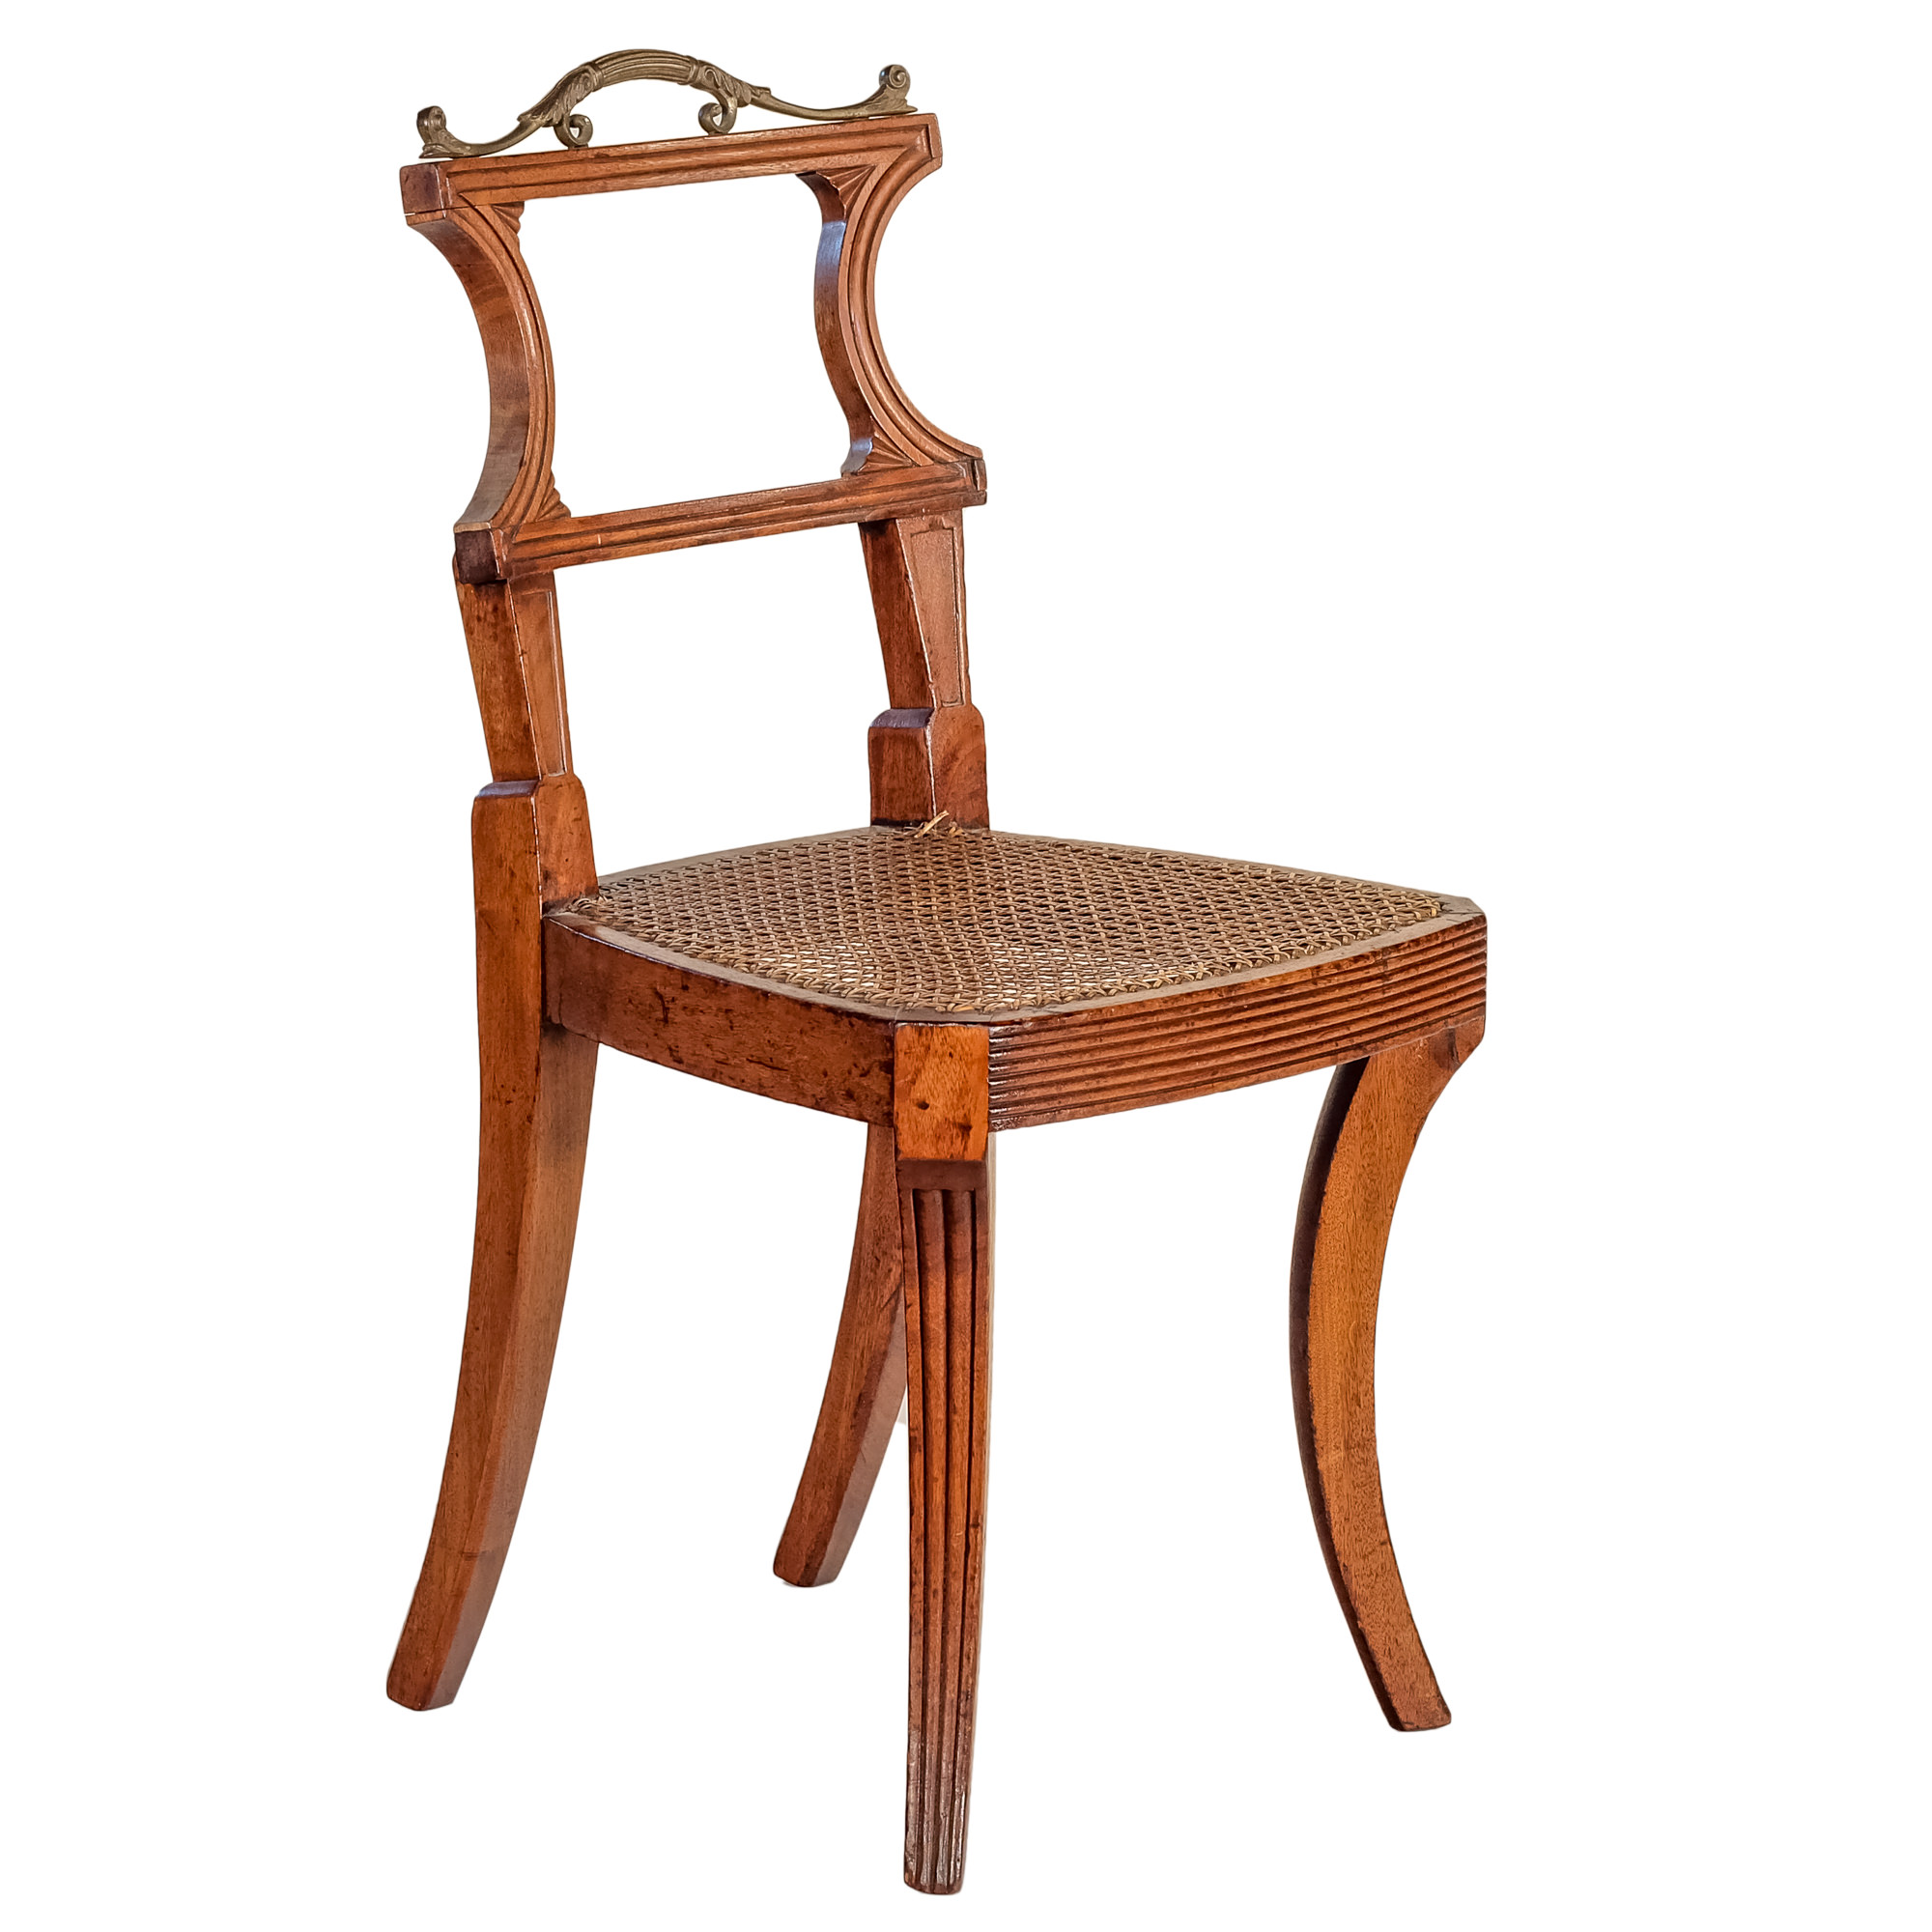 'Regency Period Mahogany and Ormolu Mounted Hall Chair with Caned Seat Circa 1815'